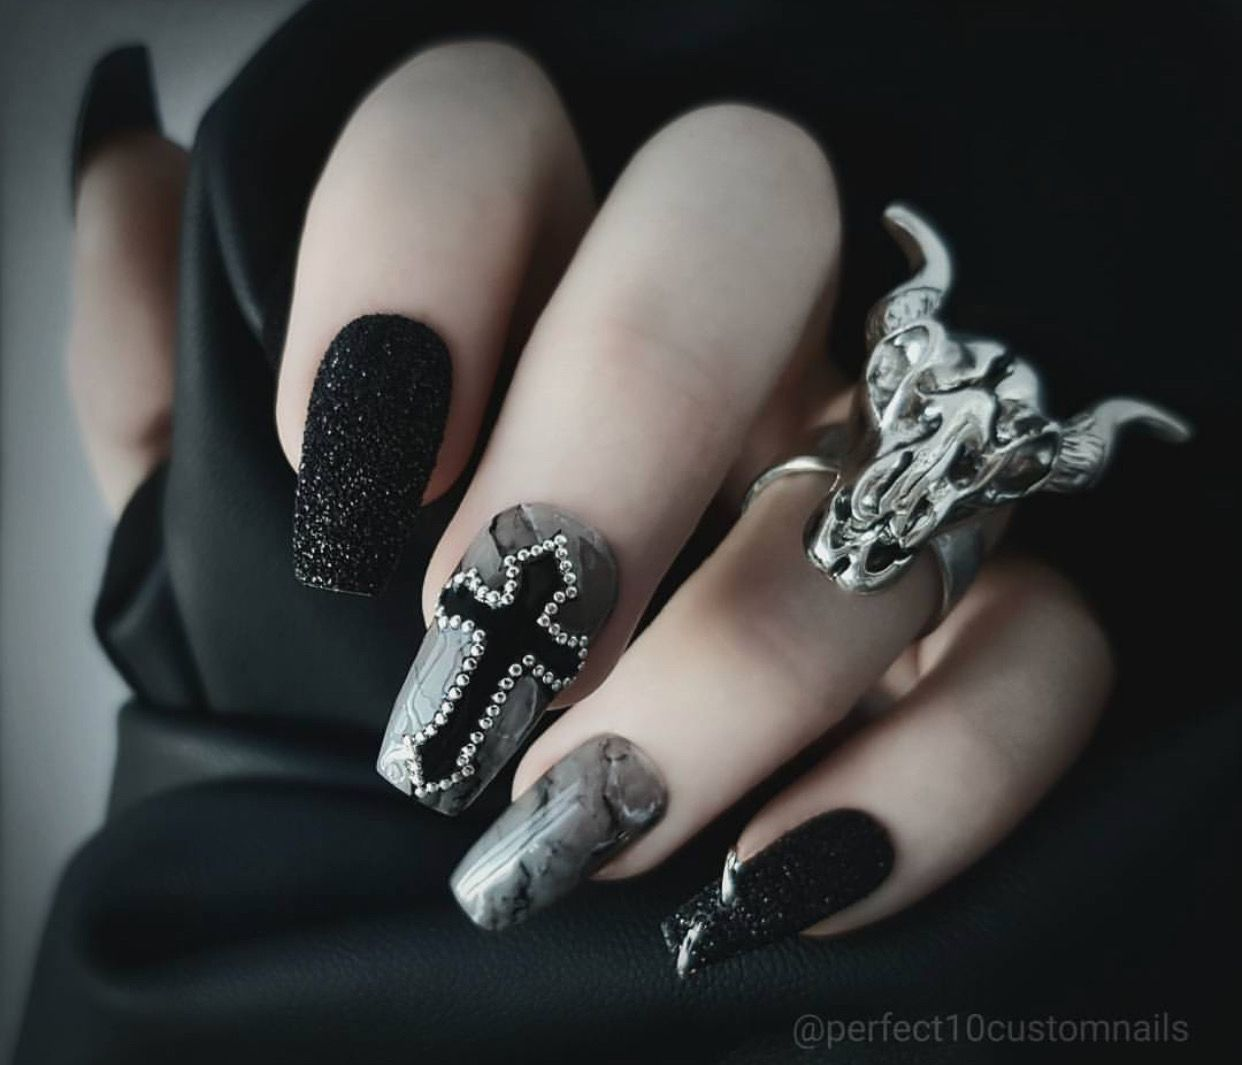 Pin by Simone Smith on Nails | Pinterest